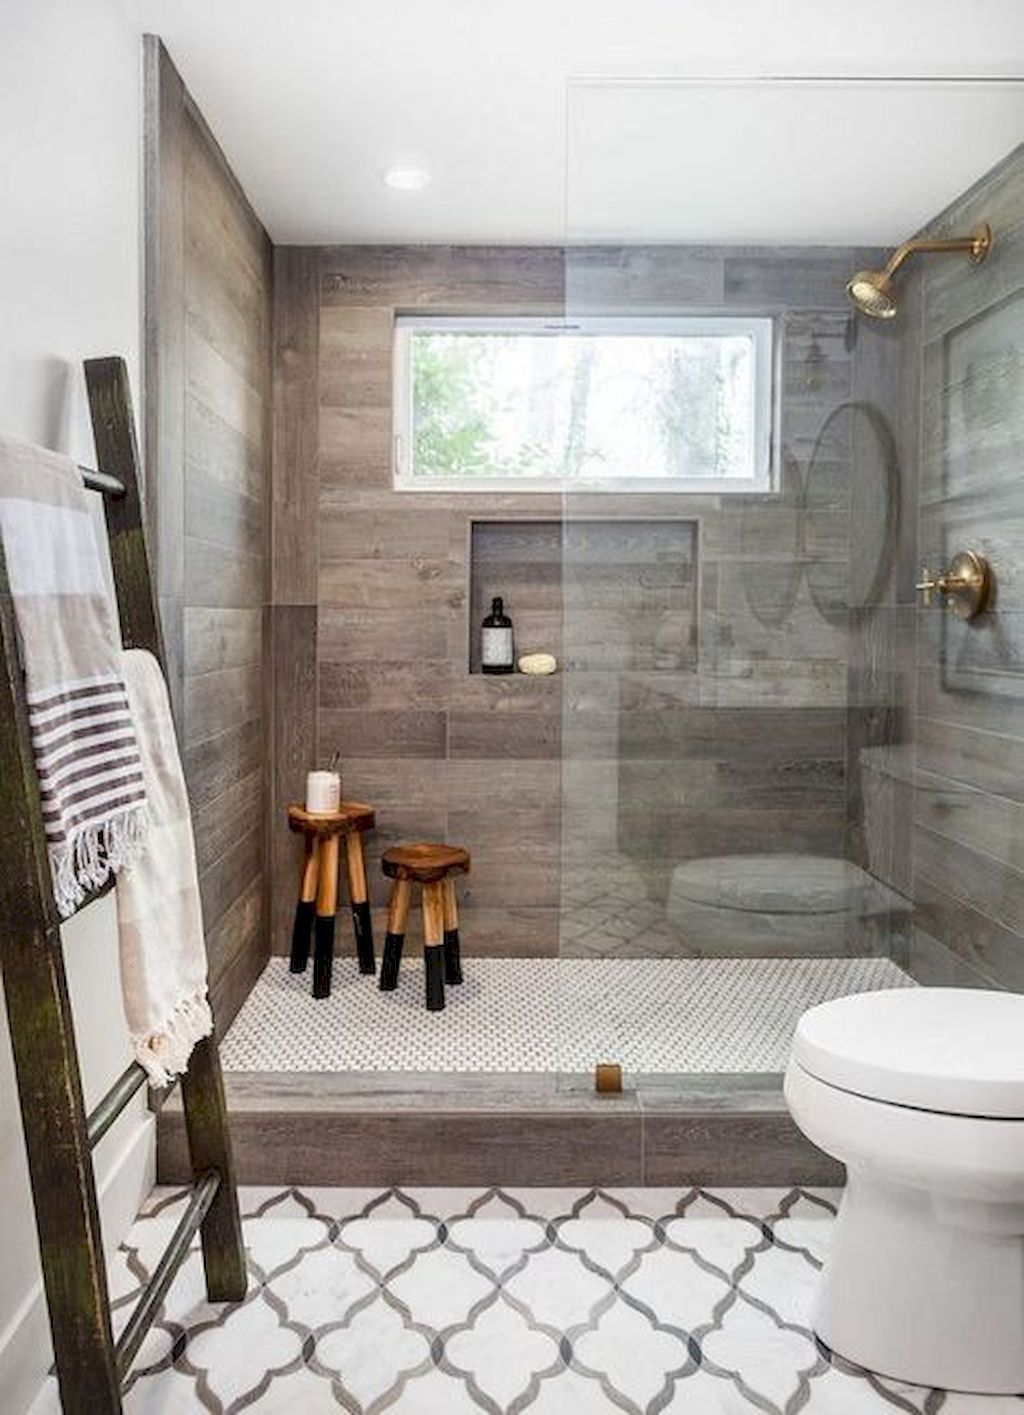 80 Best Farmhouse Tile Shower Ideas Remodel Http Prohomedecor Info 80 Best Farmhouse Farmhouse Master Bathroom Bathroom Remodel Master Small Bathroom Remodel